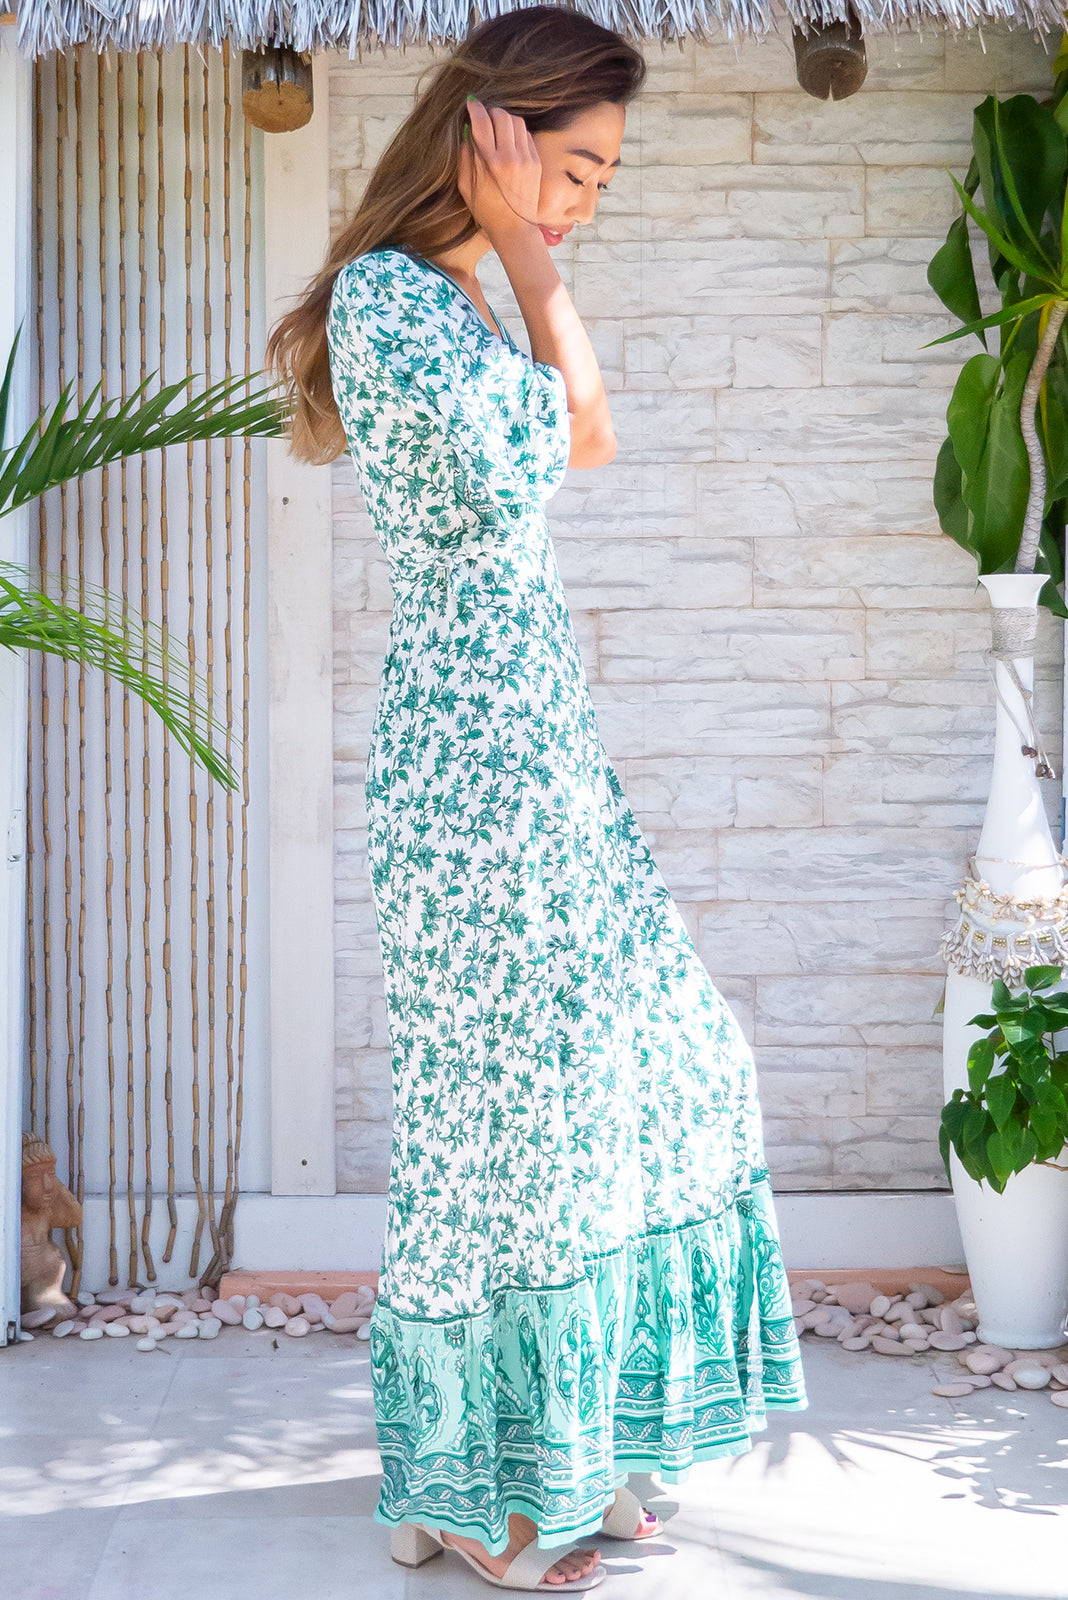 This bohemian frock, Tamara Fern Green Wrap Dress has short sleeves, flattering adjustable wrap design, frill hem with border print and white base with intricate mint and green print in woven 100% rayon.